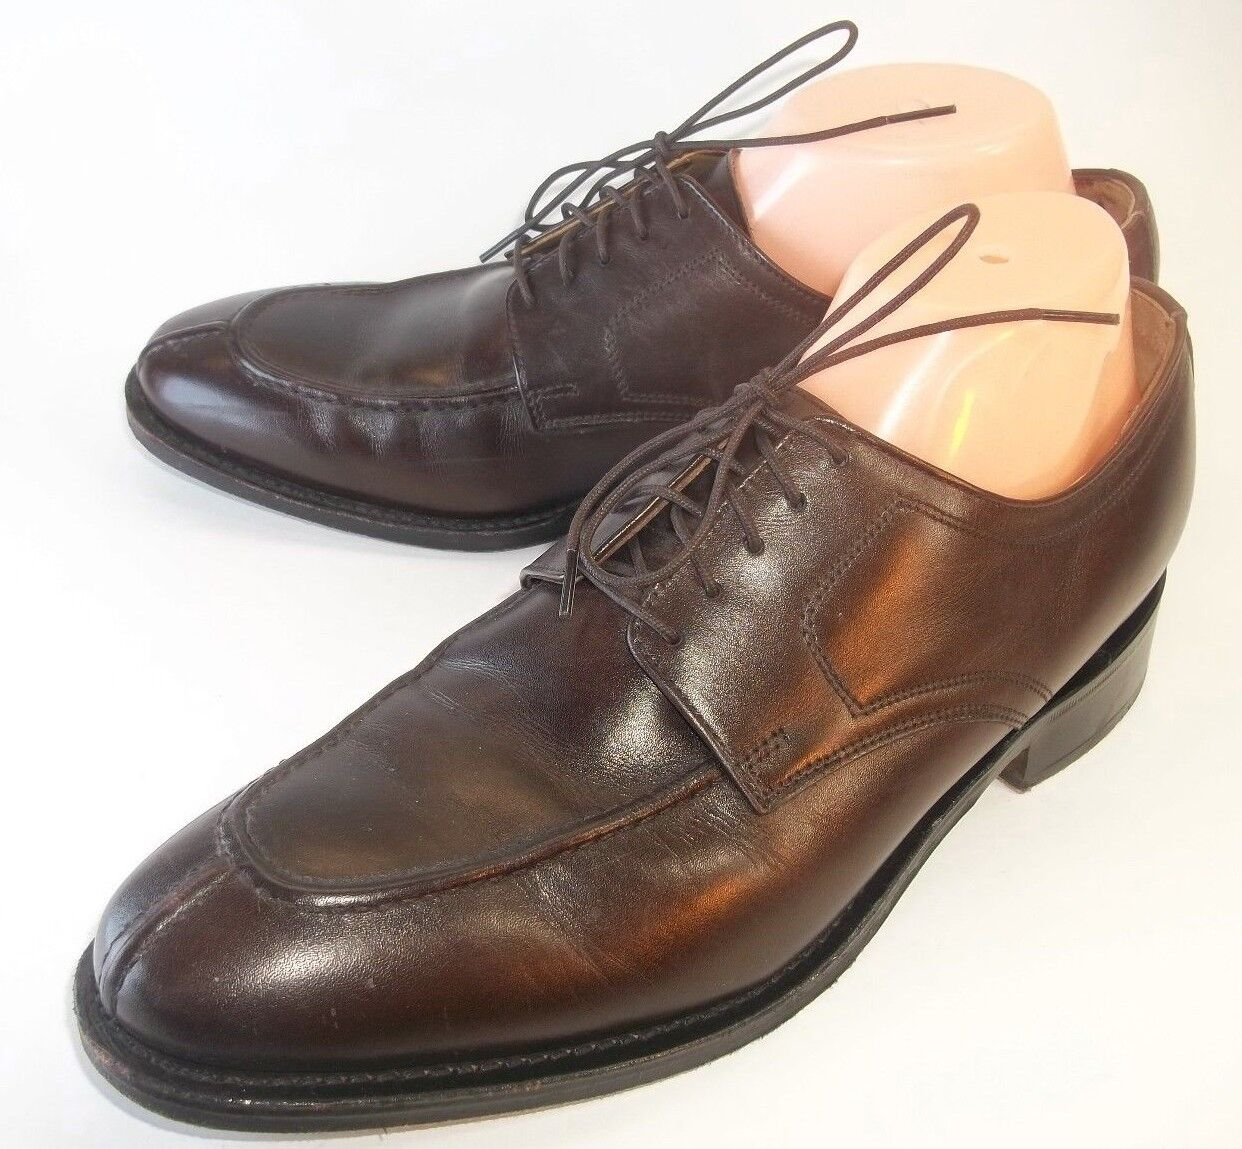 Johnston Murphy Mens shoes Oxfords US 8 M Brown Leather Lace-Up Moc Toe Dress